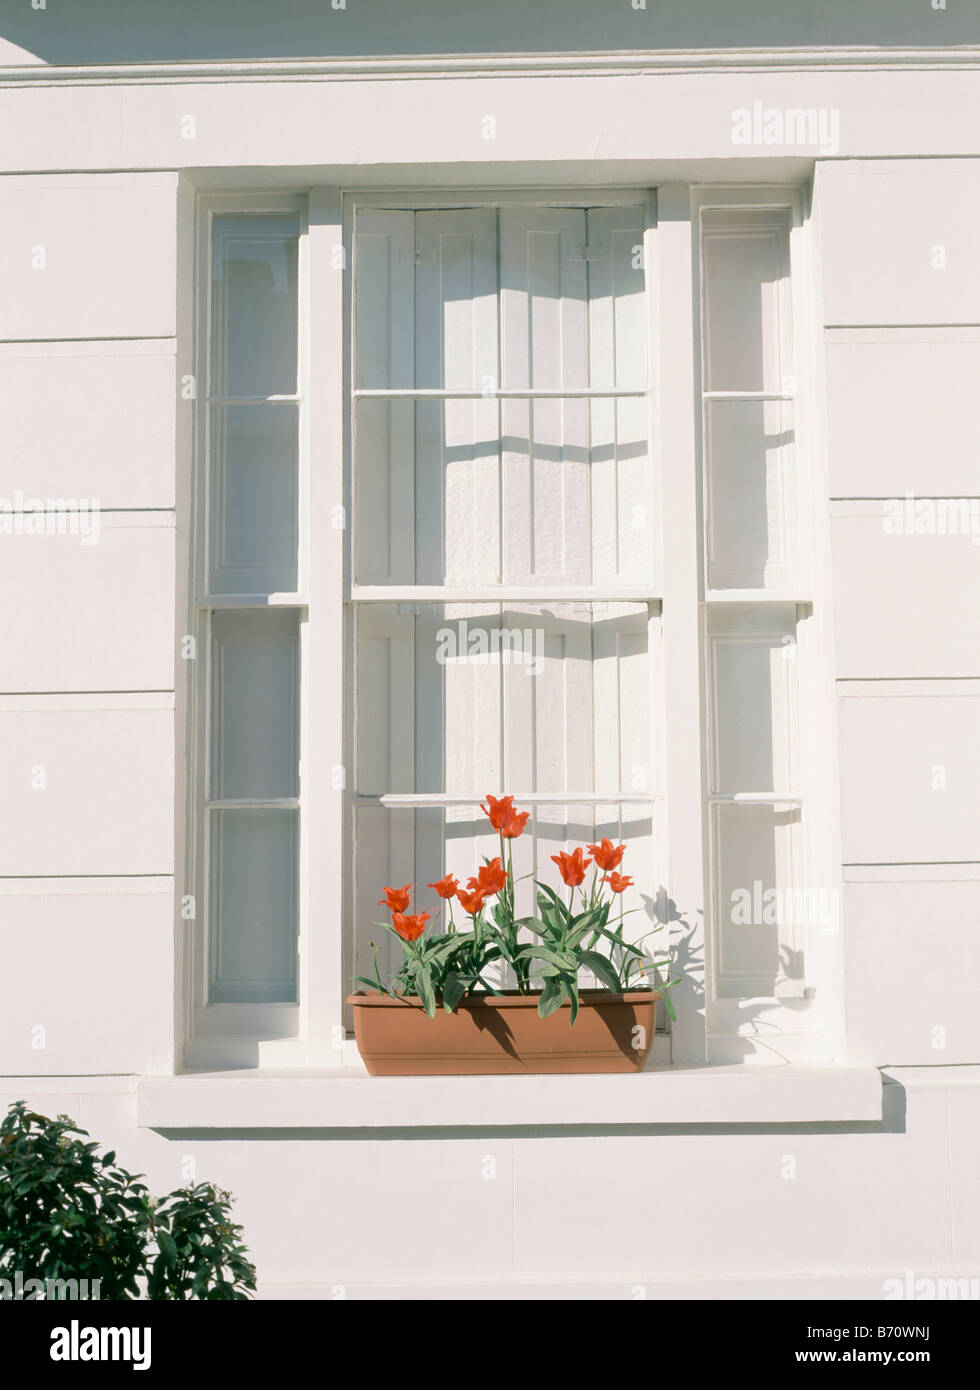 Close Up Of Window With Internal White Shutters On Traditional White  Townhouse With Red Tulips In Pot On Windowsill